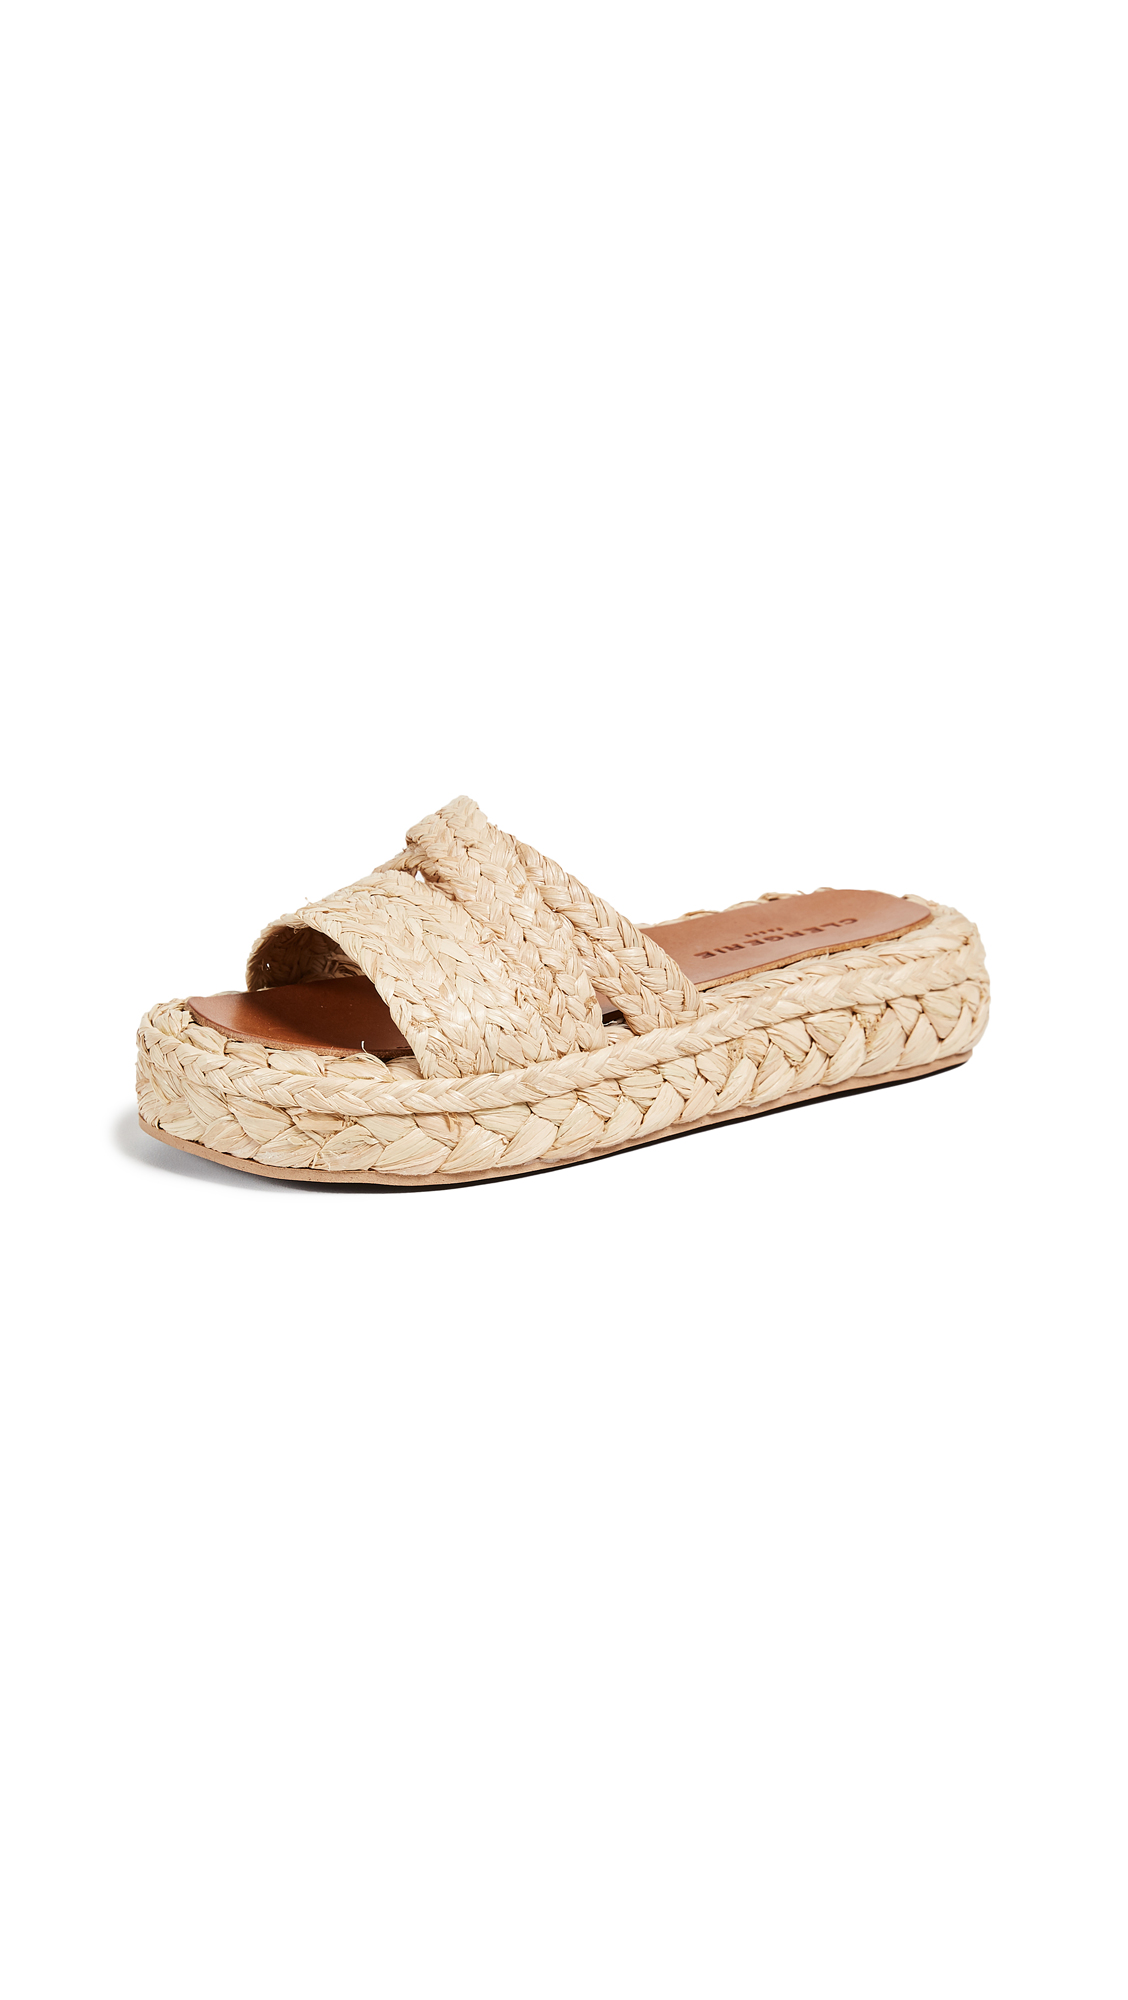 Robert Clergerie Idalie Raffia Sandals